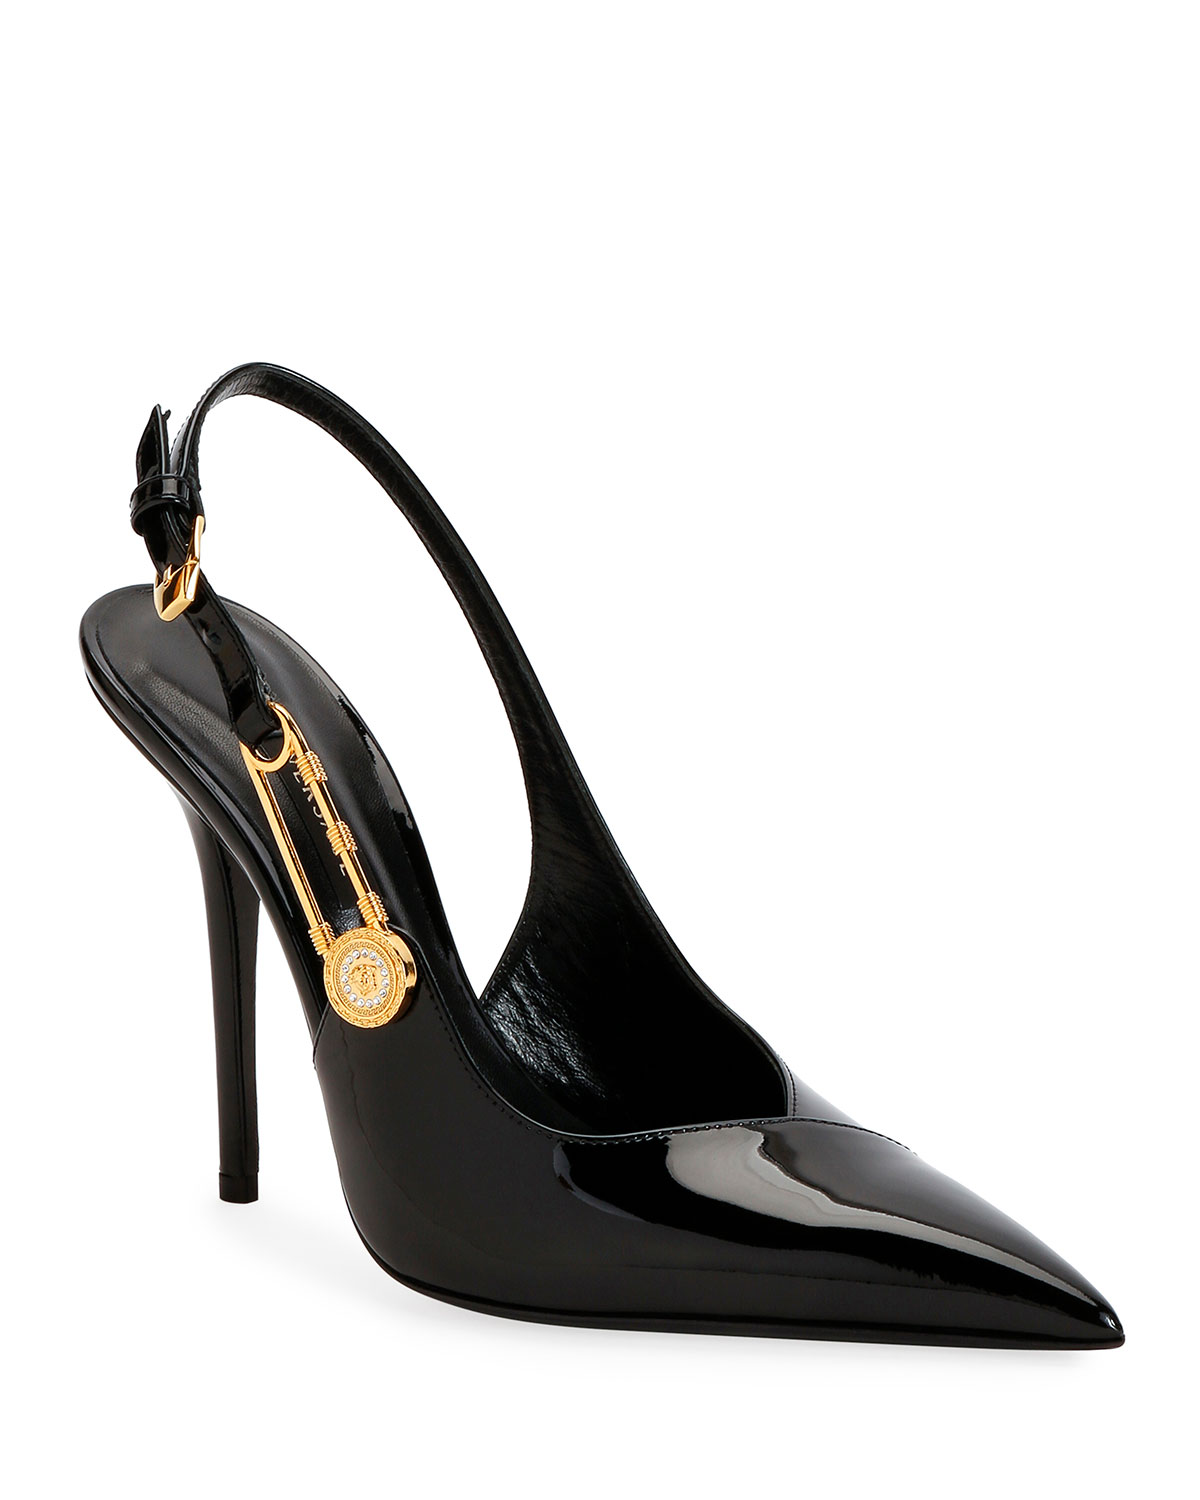 Versace Safety Pin Pumps for Women | US Online Store